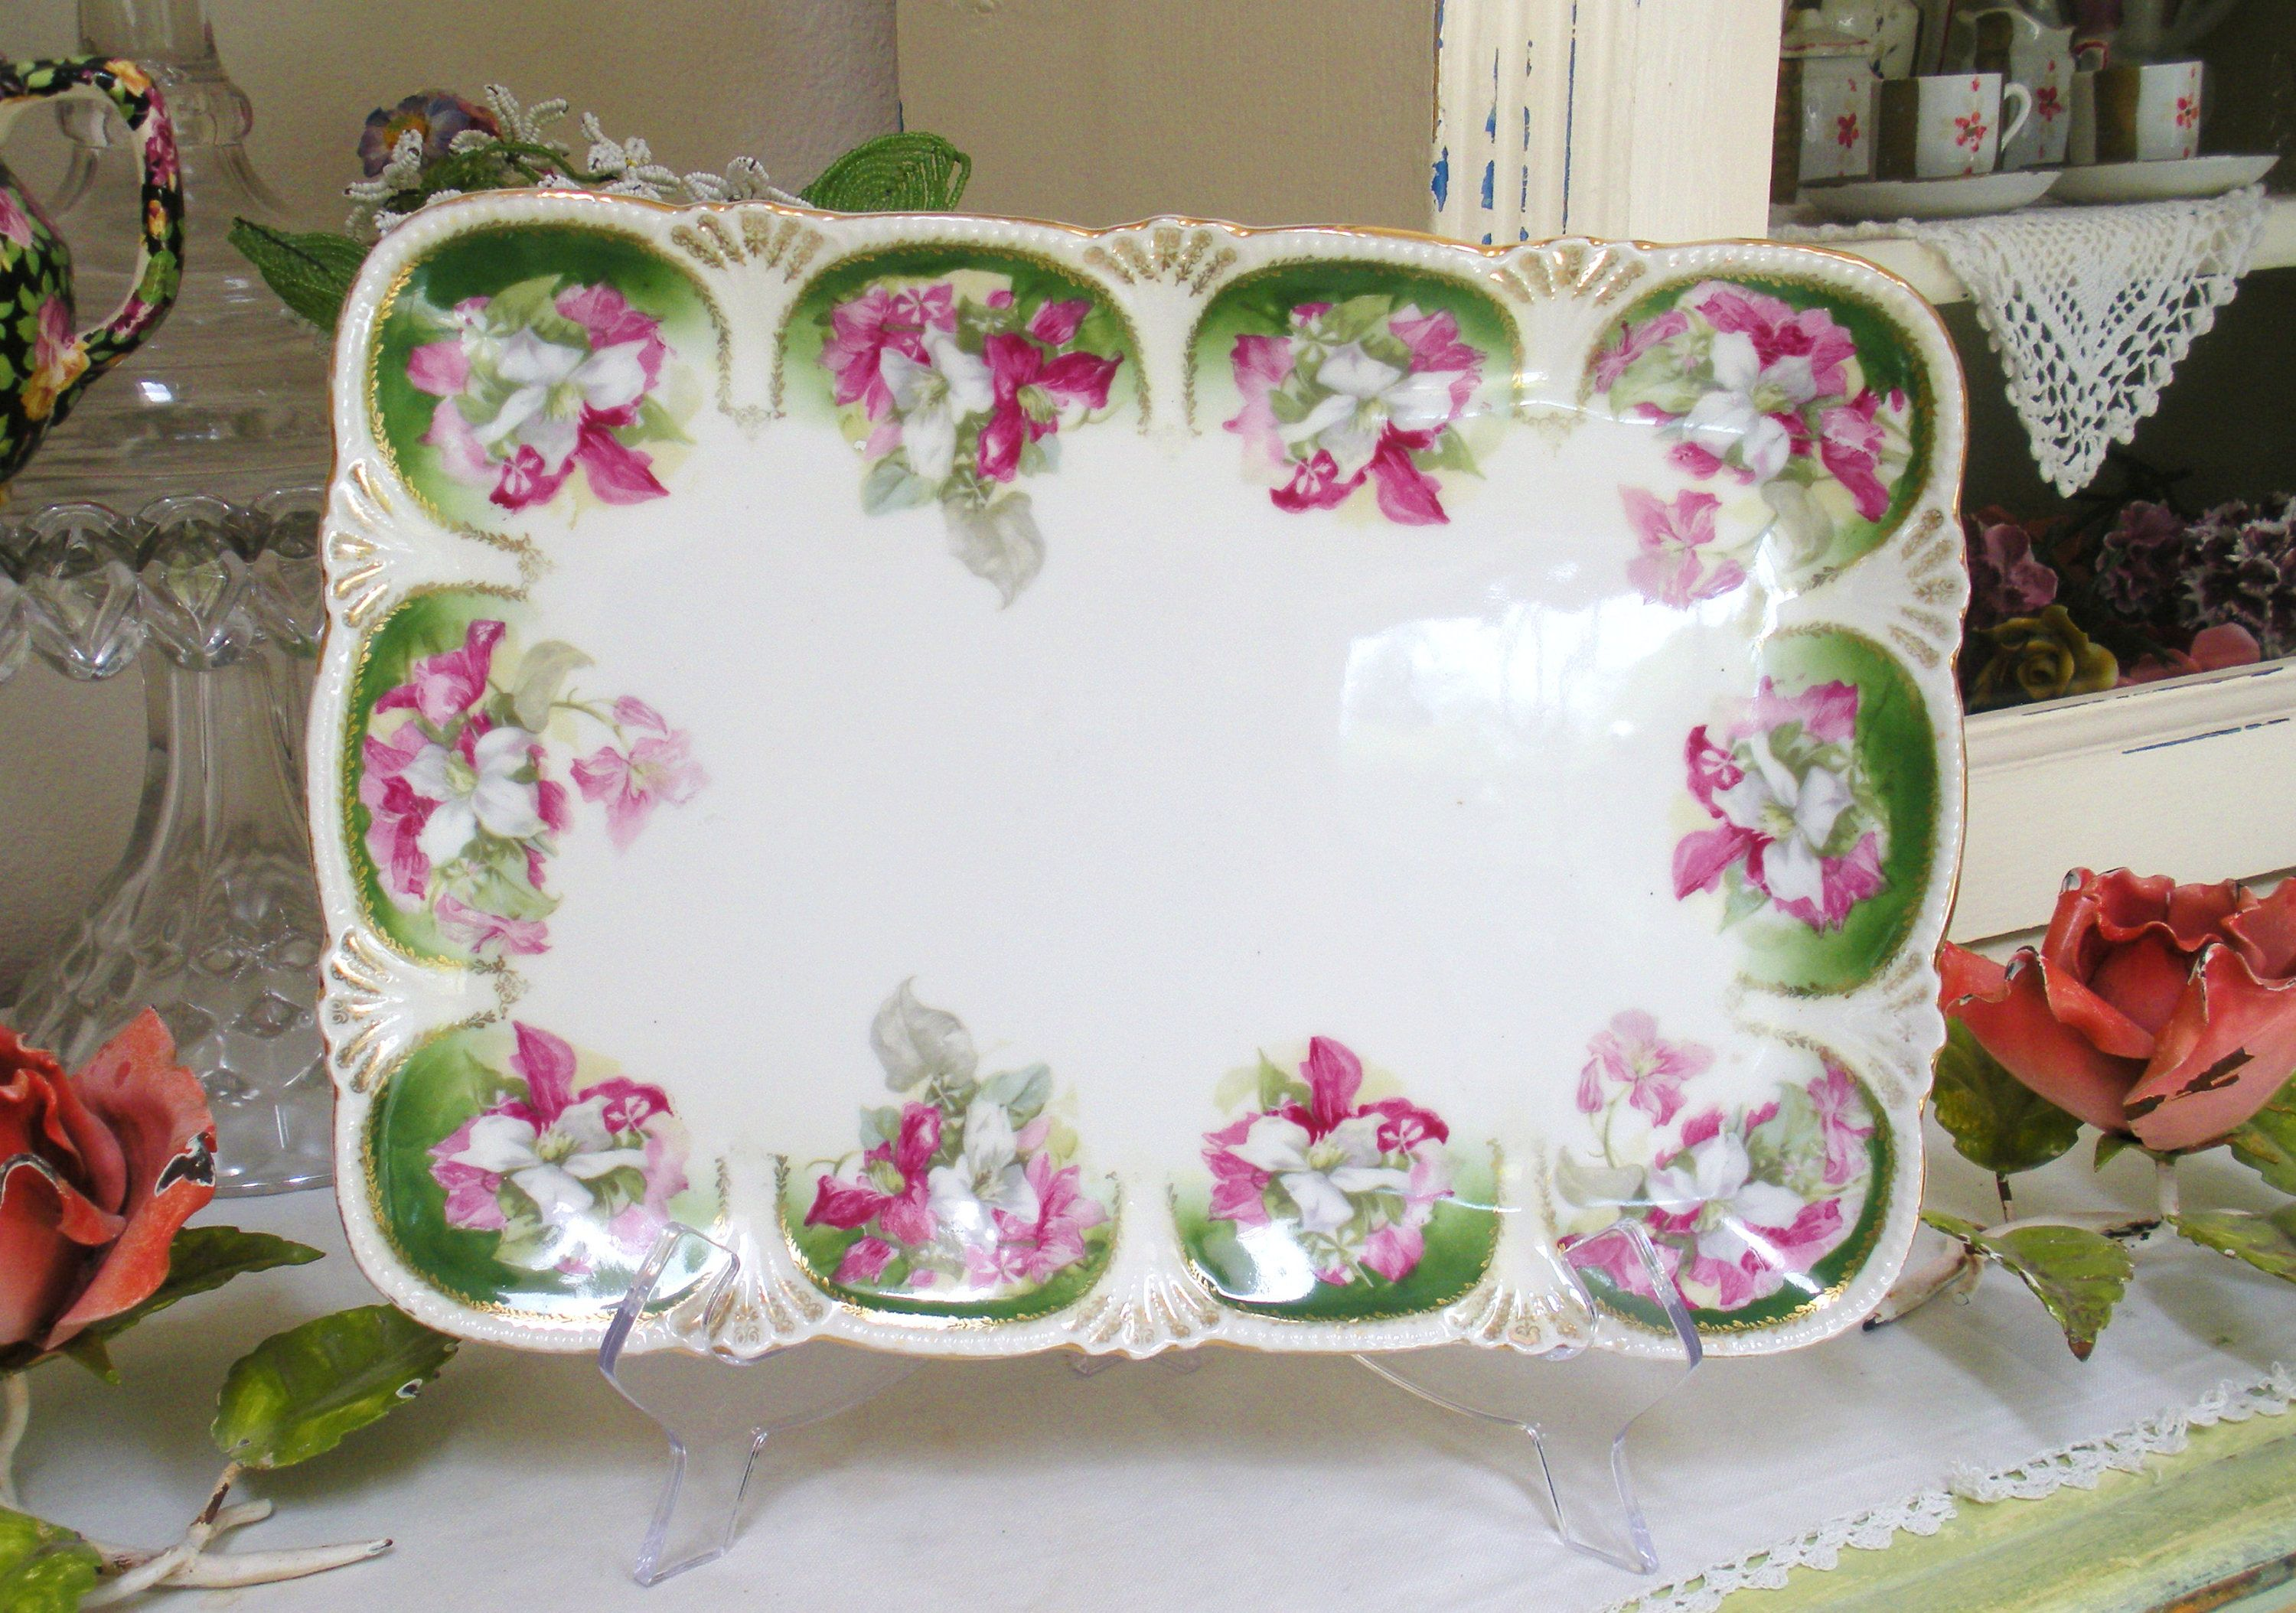 Antique Austria DRESSER VANITY TRAY Porcelain Rare Clematis Flowers Vintage by WhiteSwanAntiques on Etsy